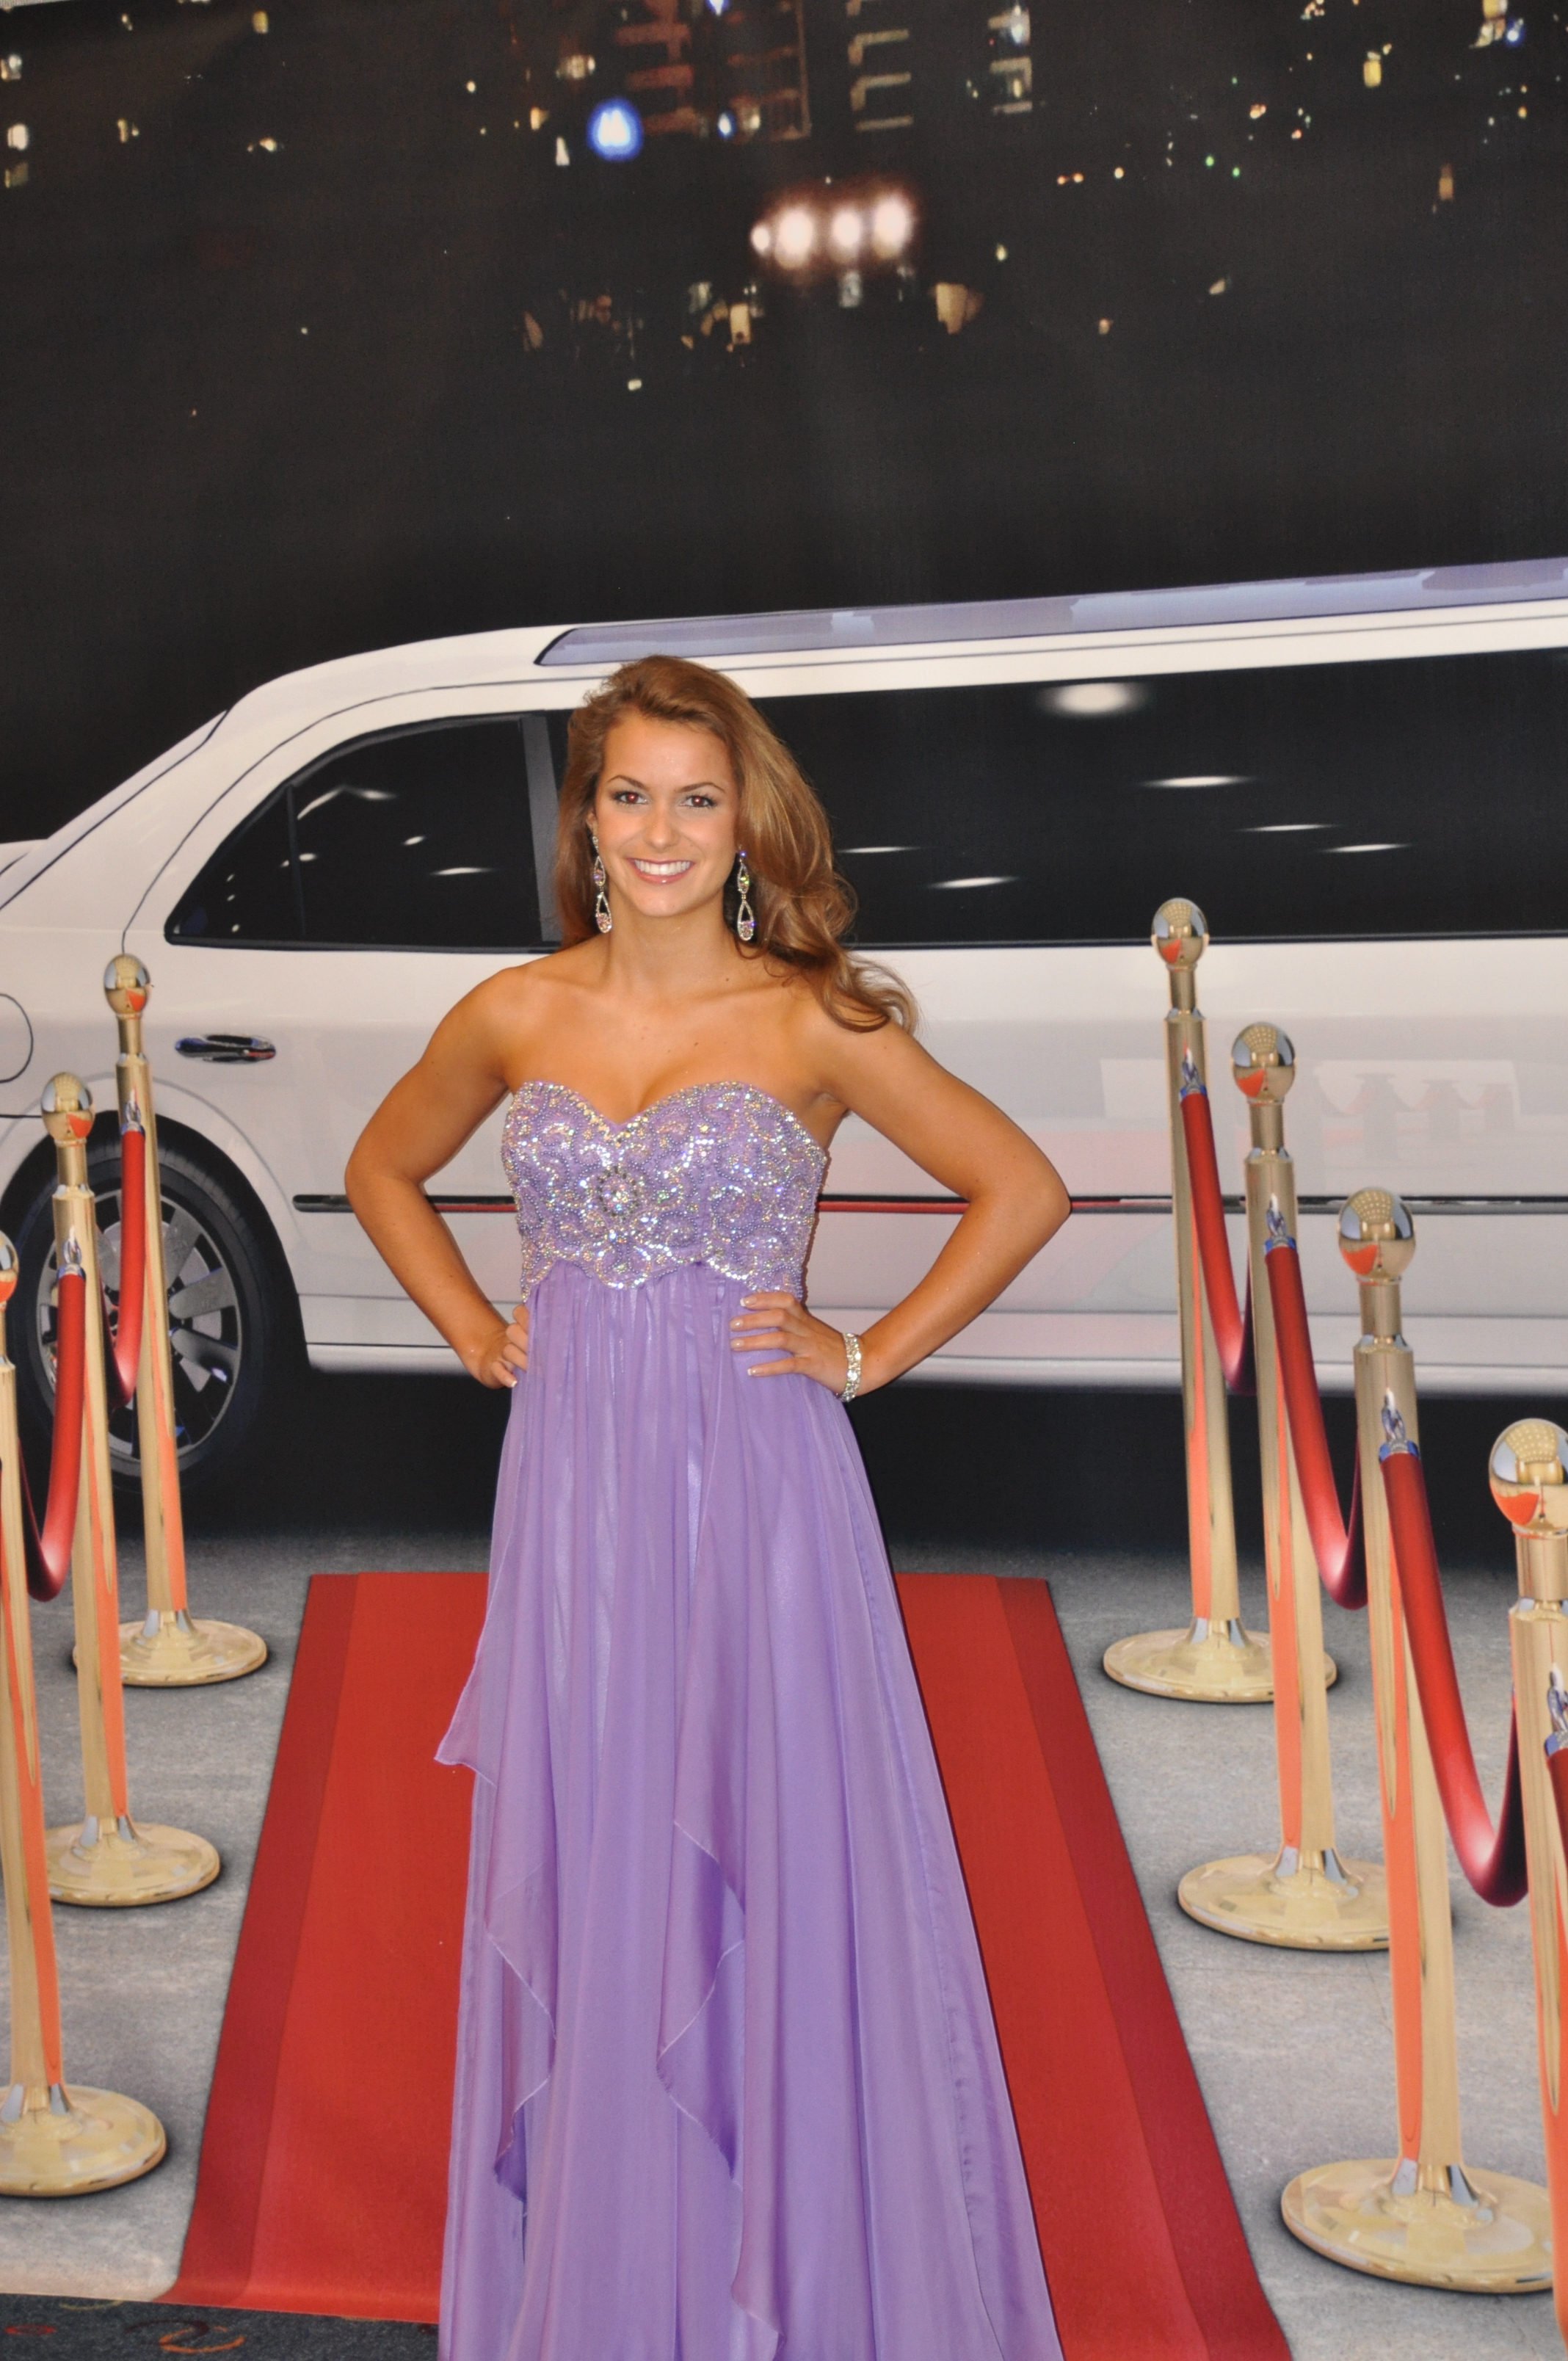 Camille Schrier On The Quot Red Carpet Quot National American